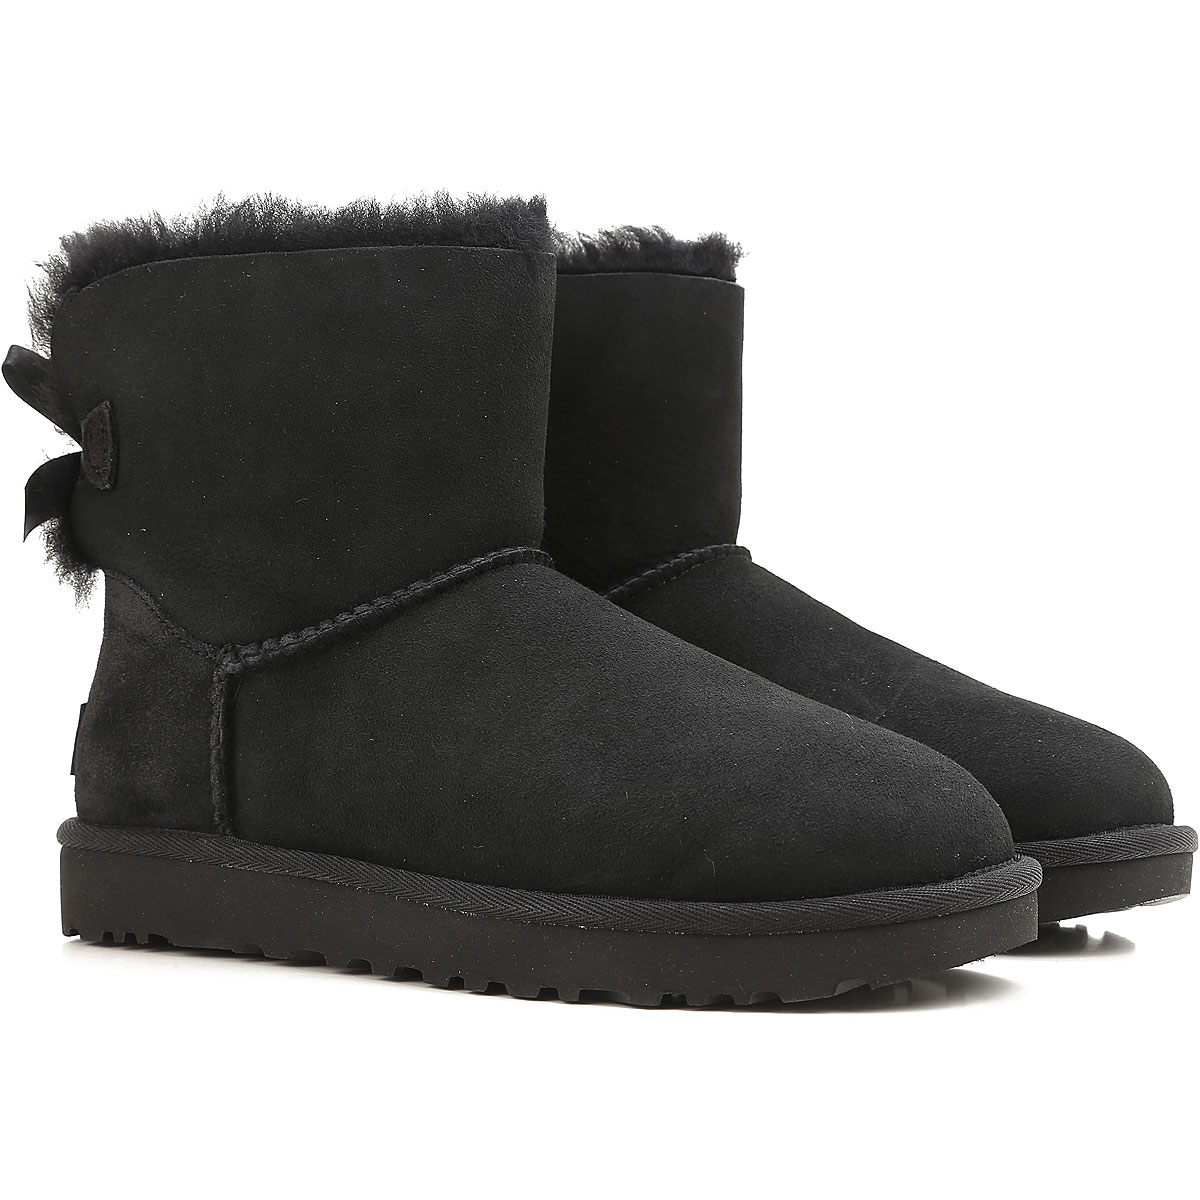 UGG Boots for Women, Booties On Sale, Black, suede, 2019, USA 5 UK 3 5 EU 36 JAPAN 220 USA 6 UK 4 5 EU 37 JAPAN 230 USA 7 UK 5 5 EU 38 JAPAN